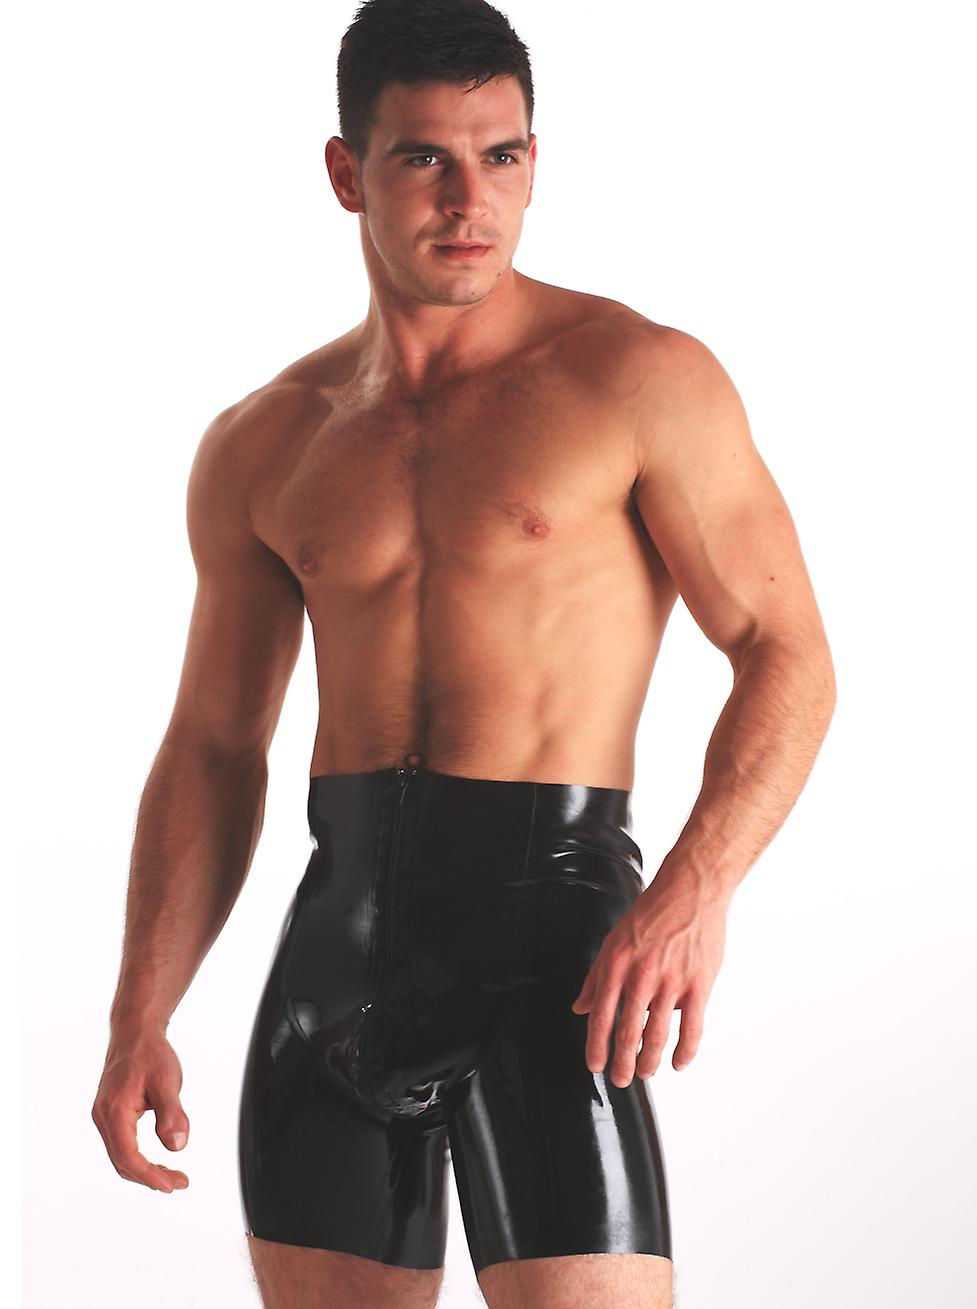 Skin Two Clothing Men's Sexy Cycle Shorts Hotpants Latex Rubber Zip Through